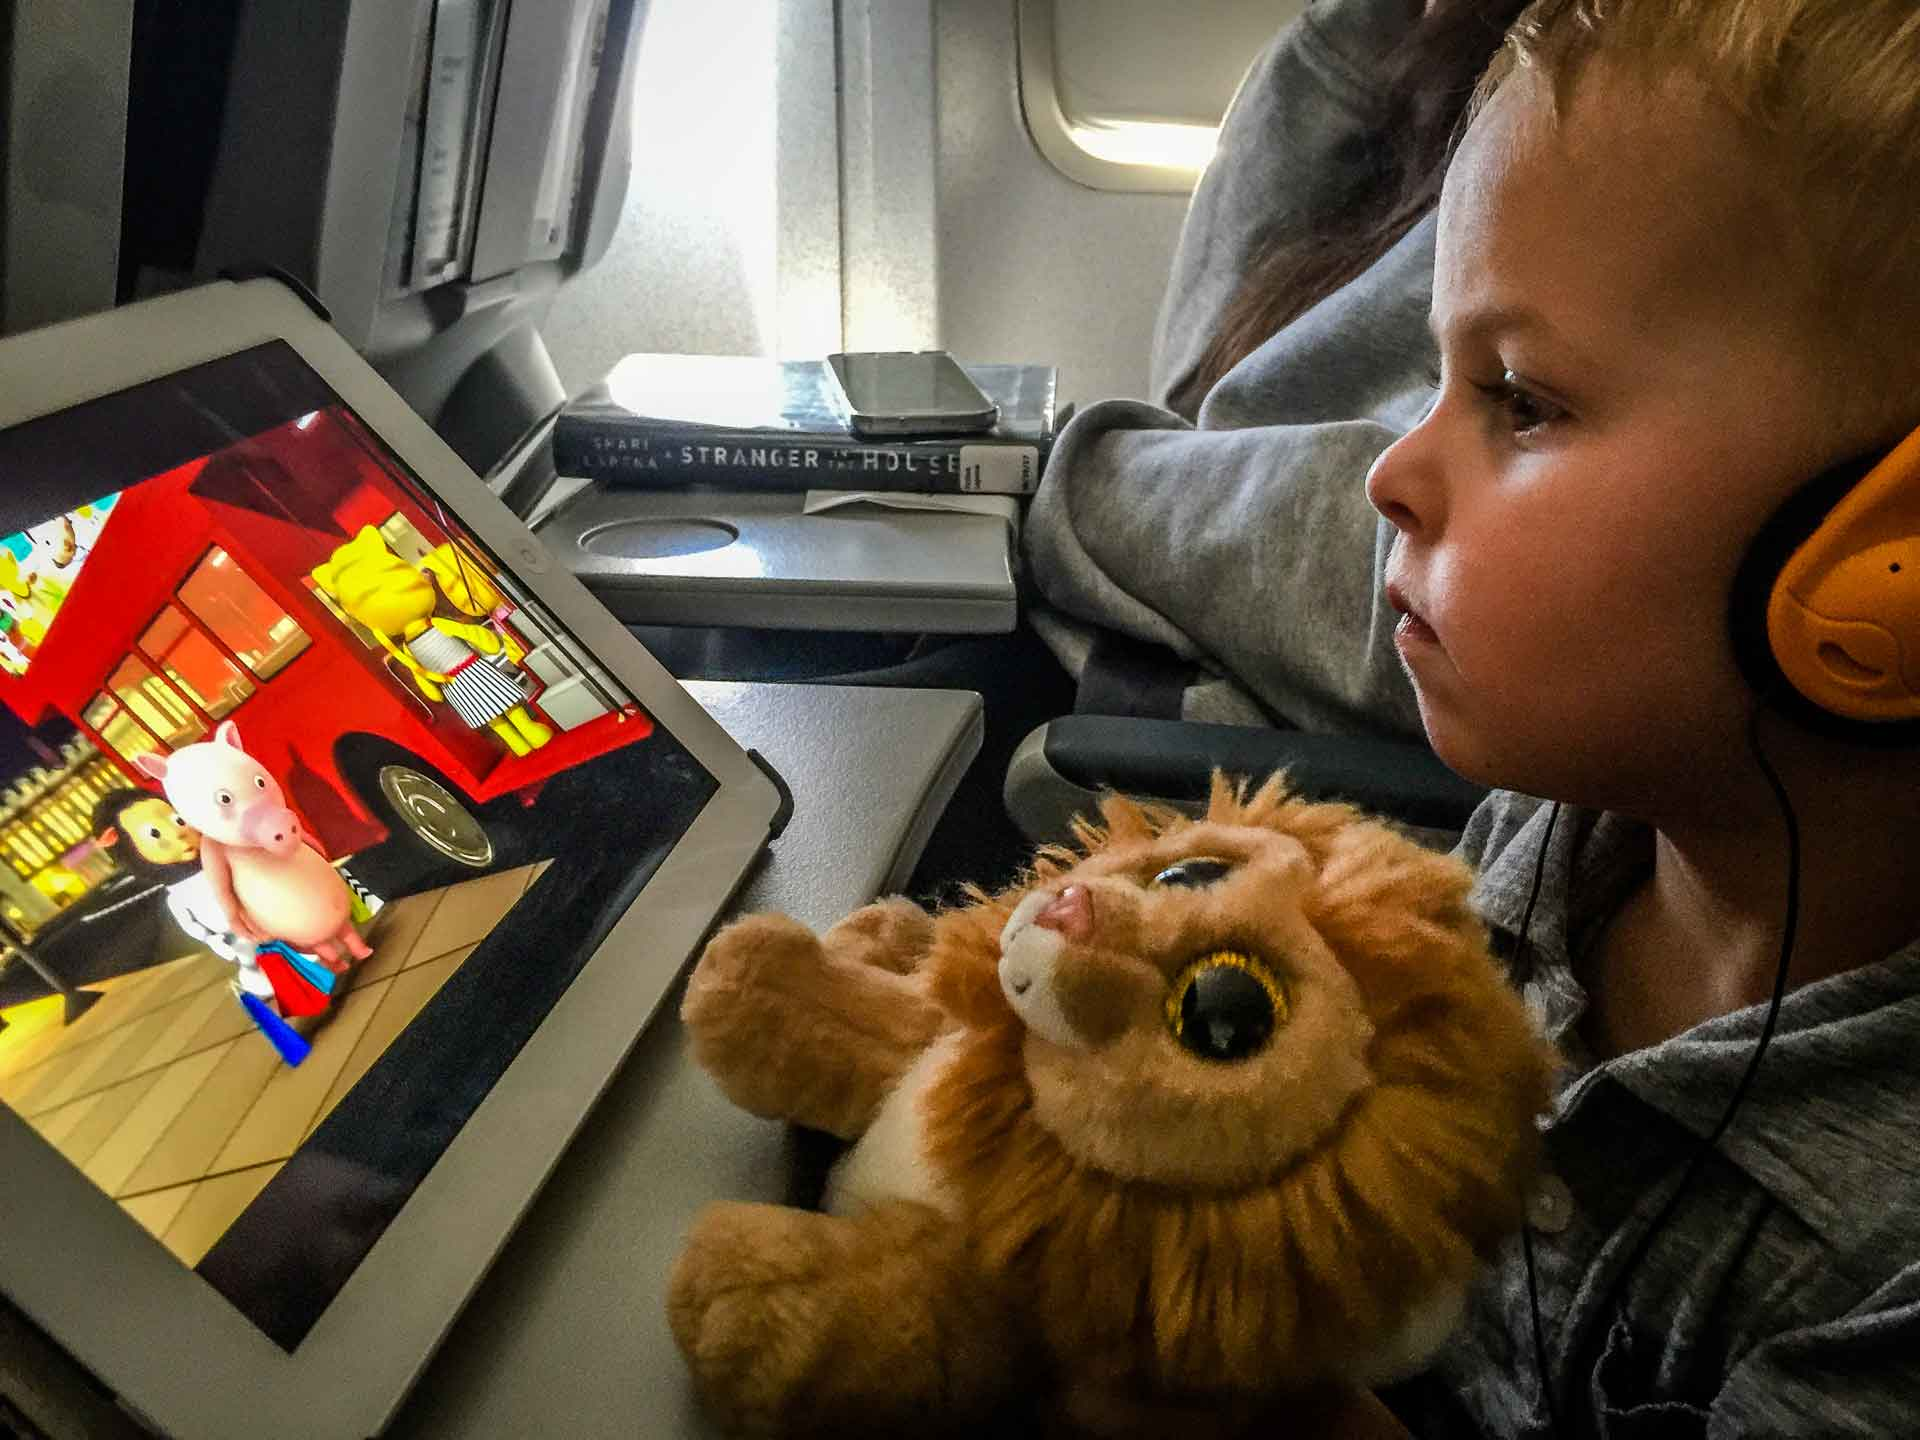 Flying with potty training toddler